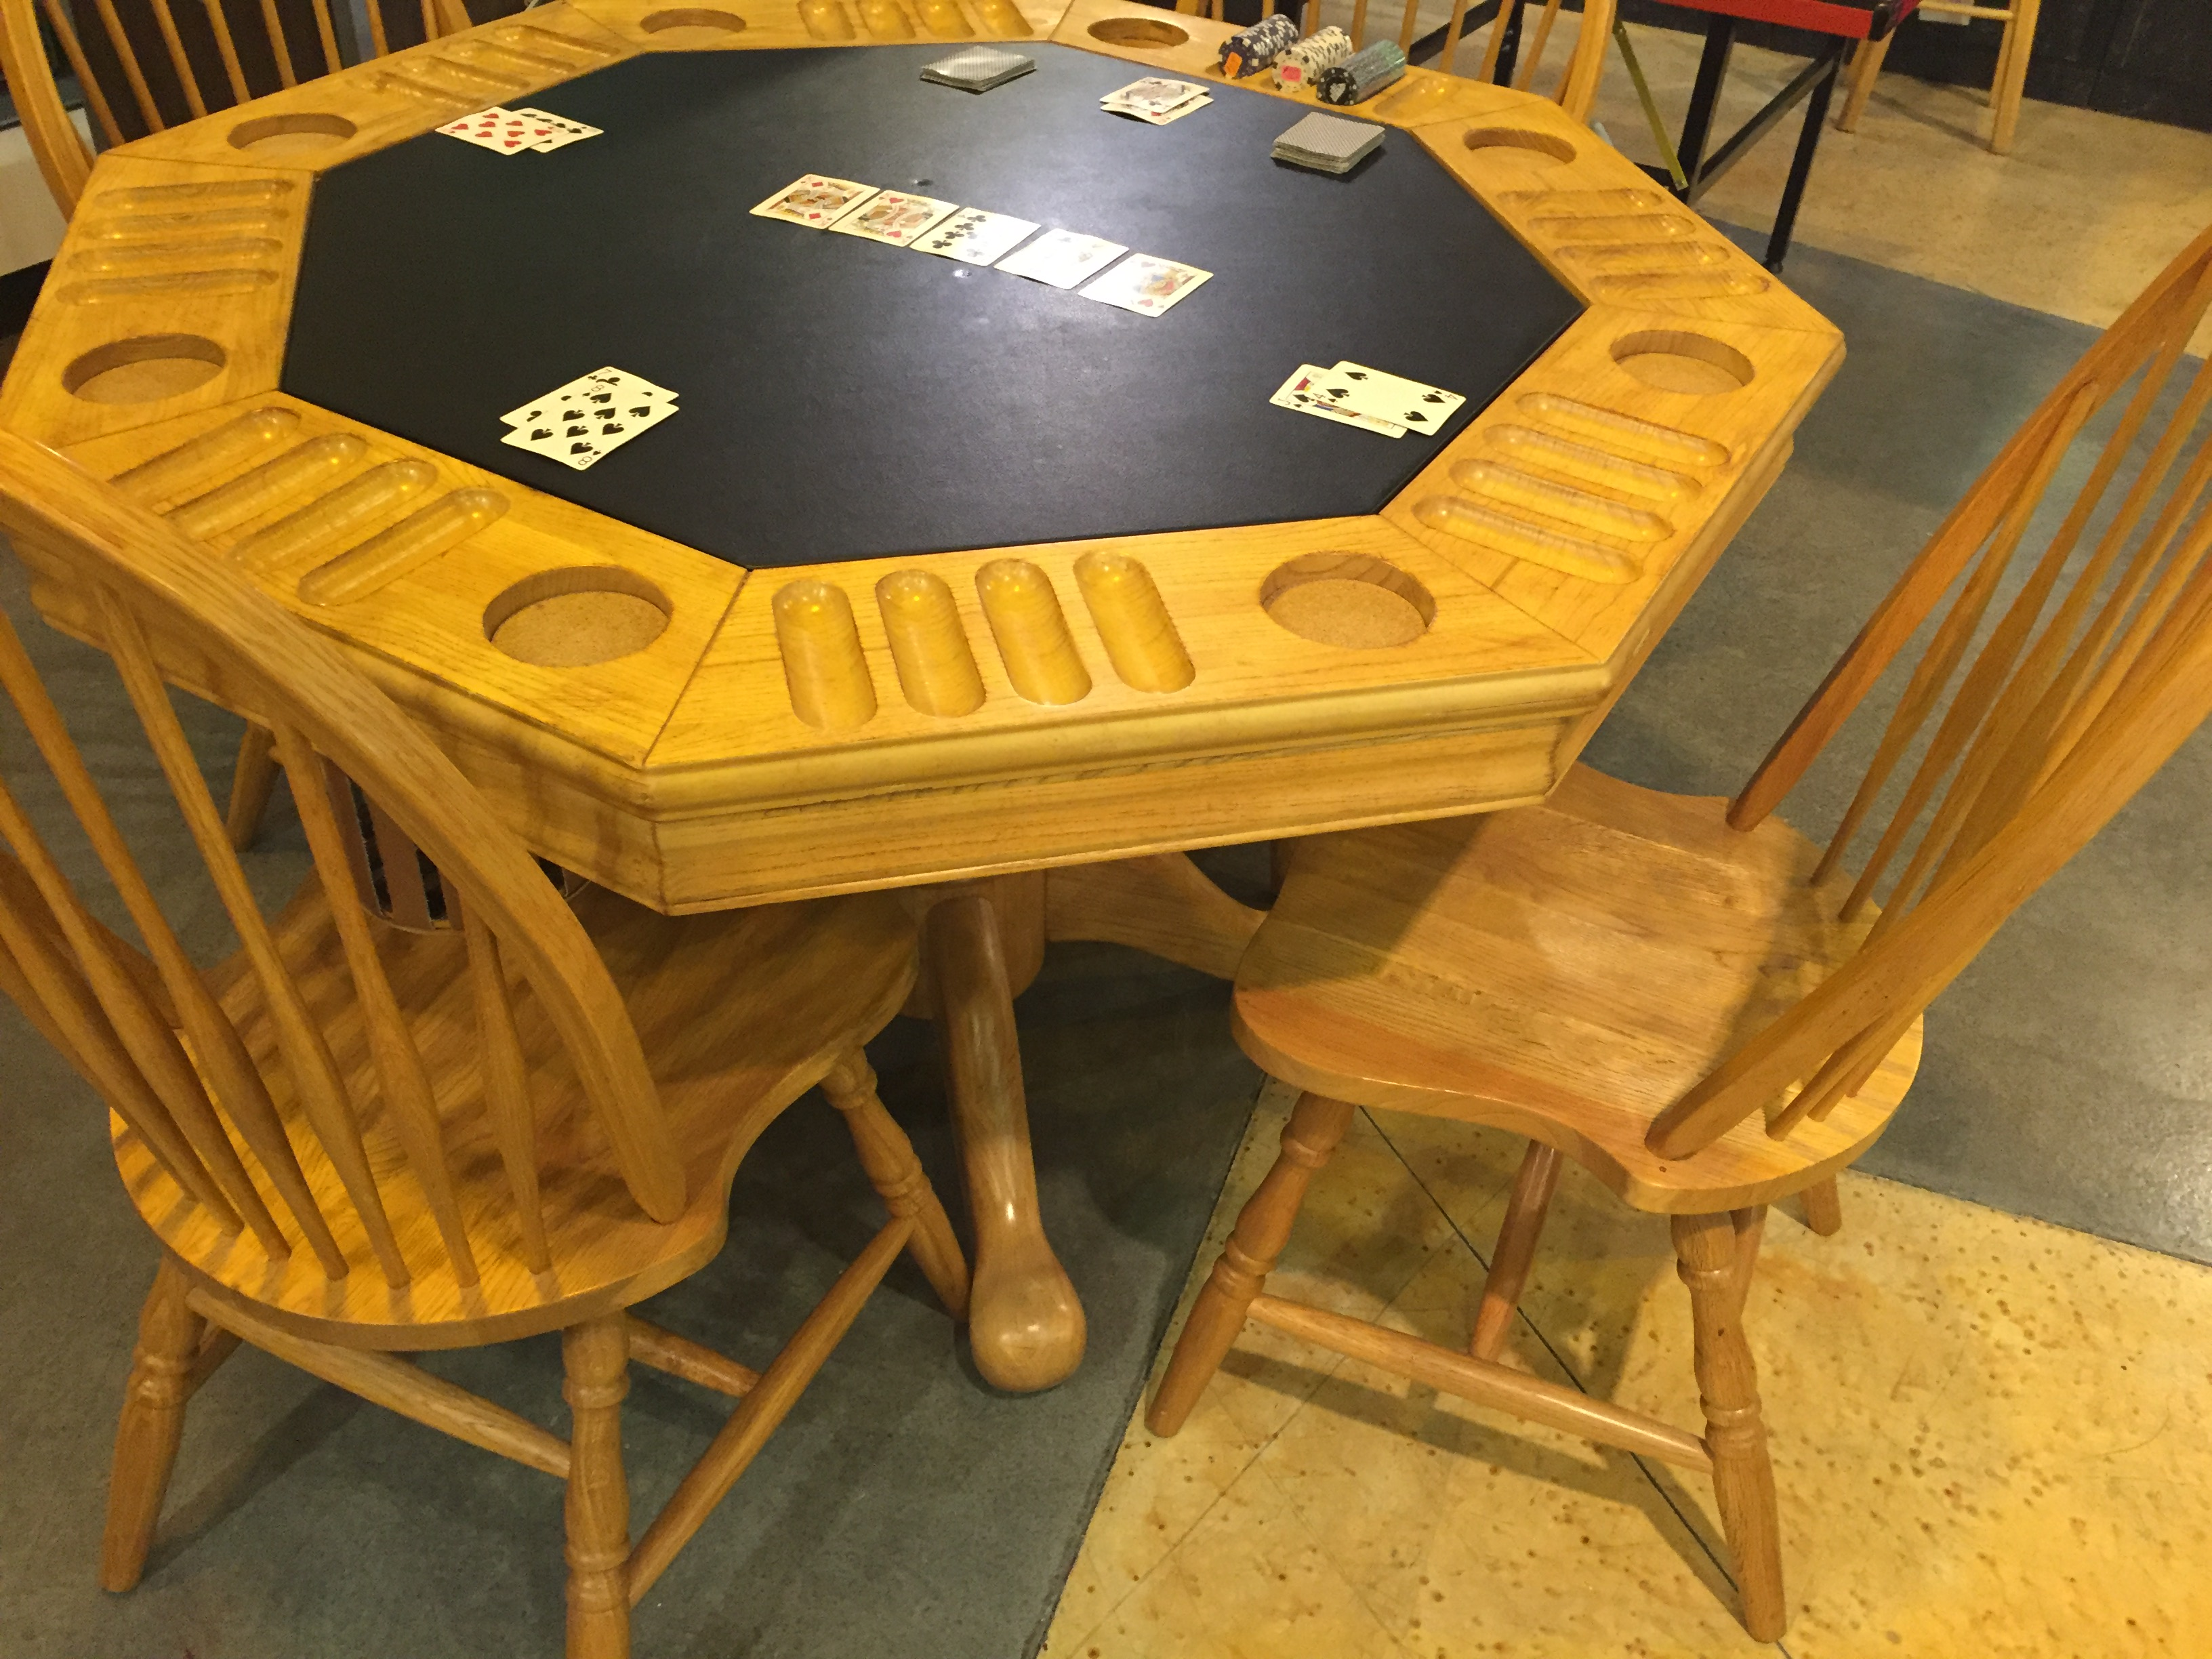 Great Four In One Game Table #19 - 48 Inch 3 In 1 Game Table U2013 Oak Finish Table Top With Cup U0026 Chip Holders  Bumper Pool U0026 Accessories Four (4) Matching Chairs